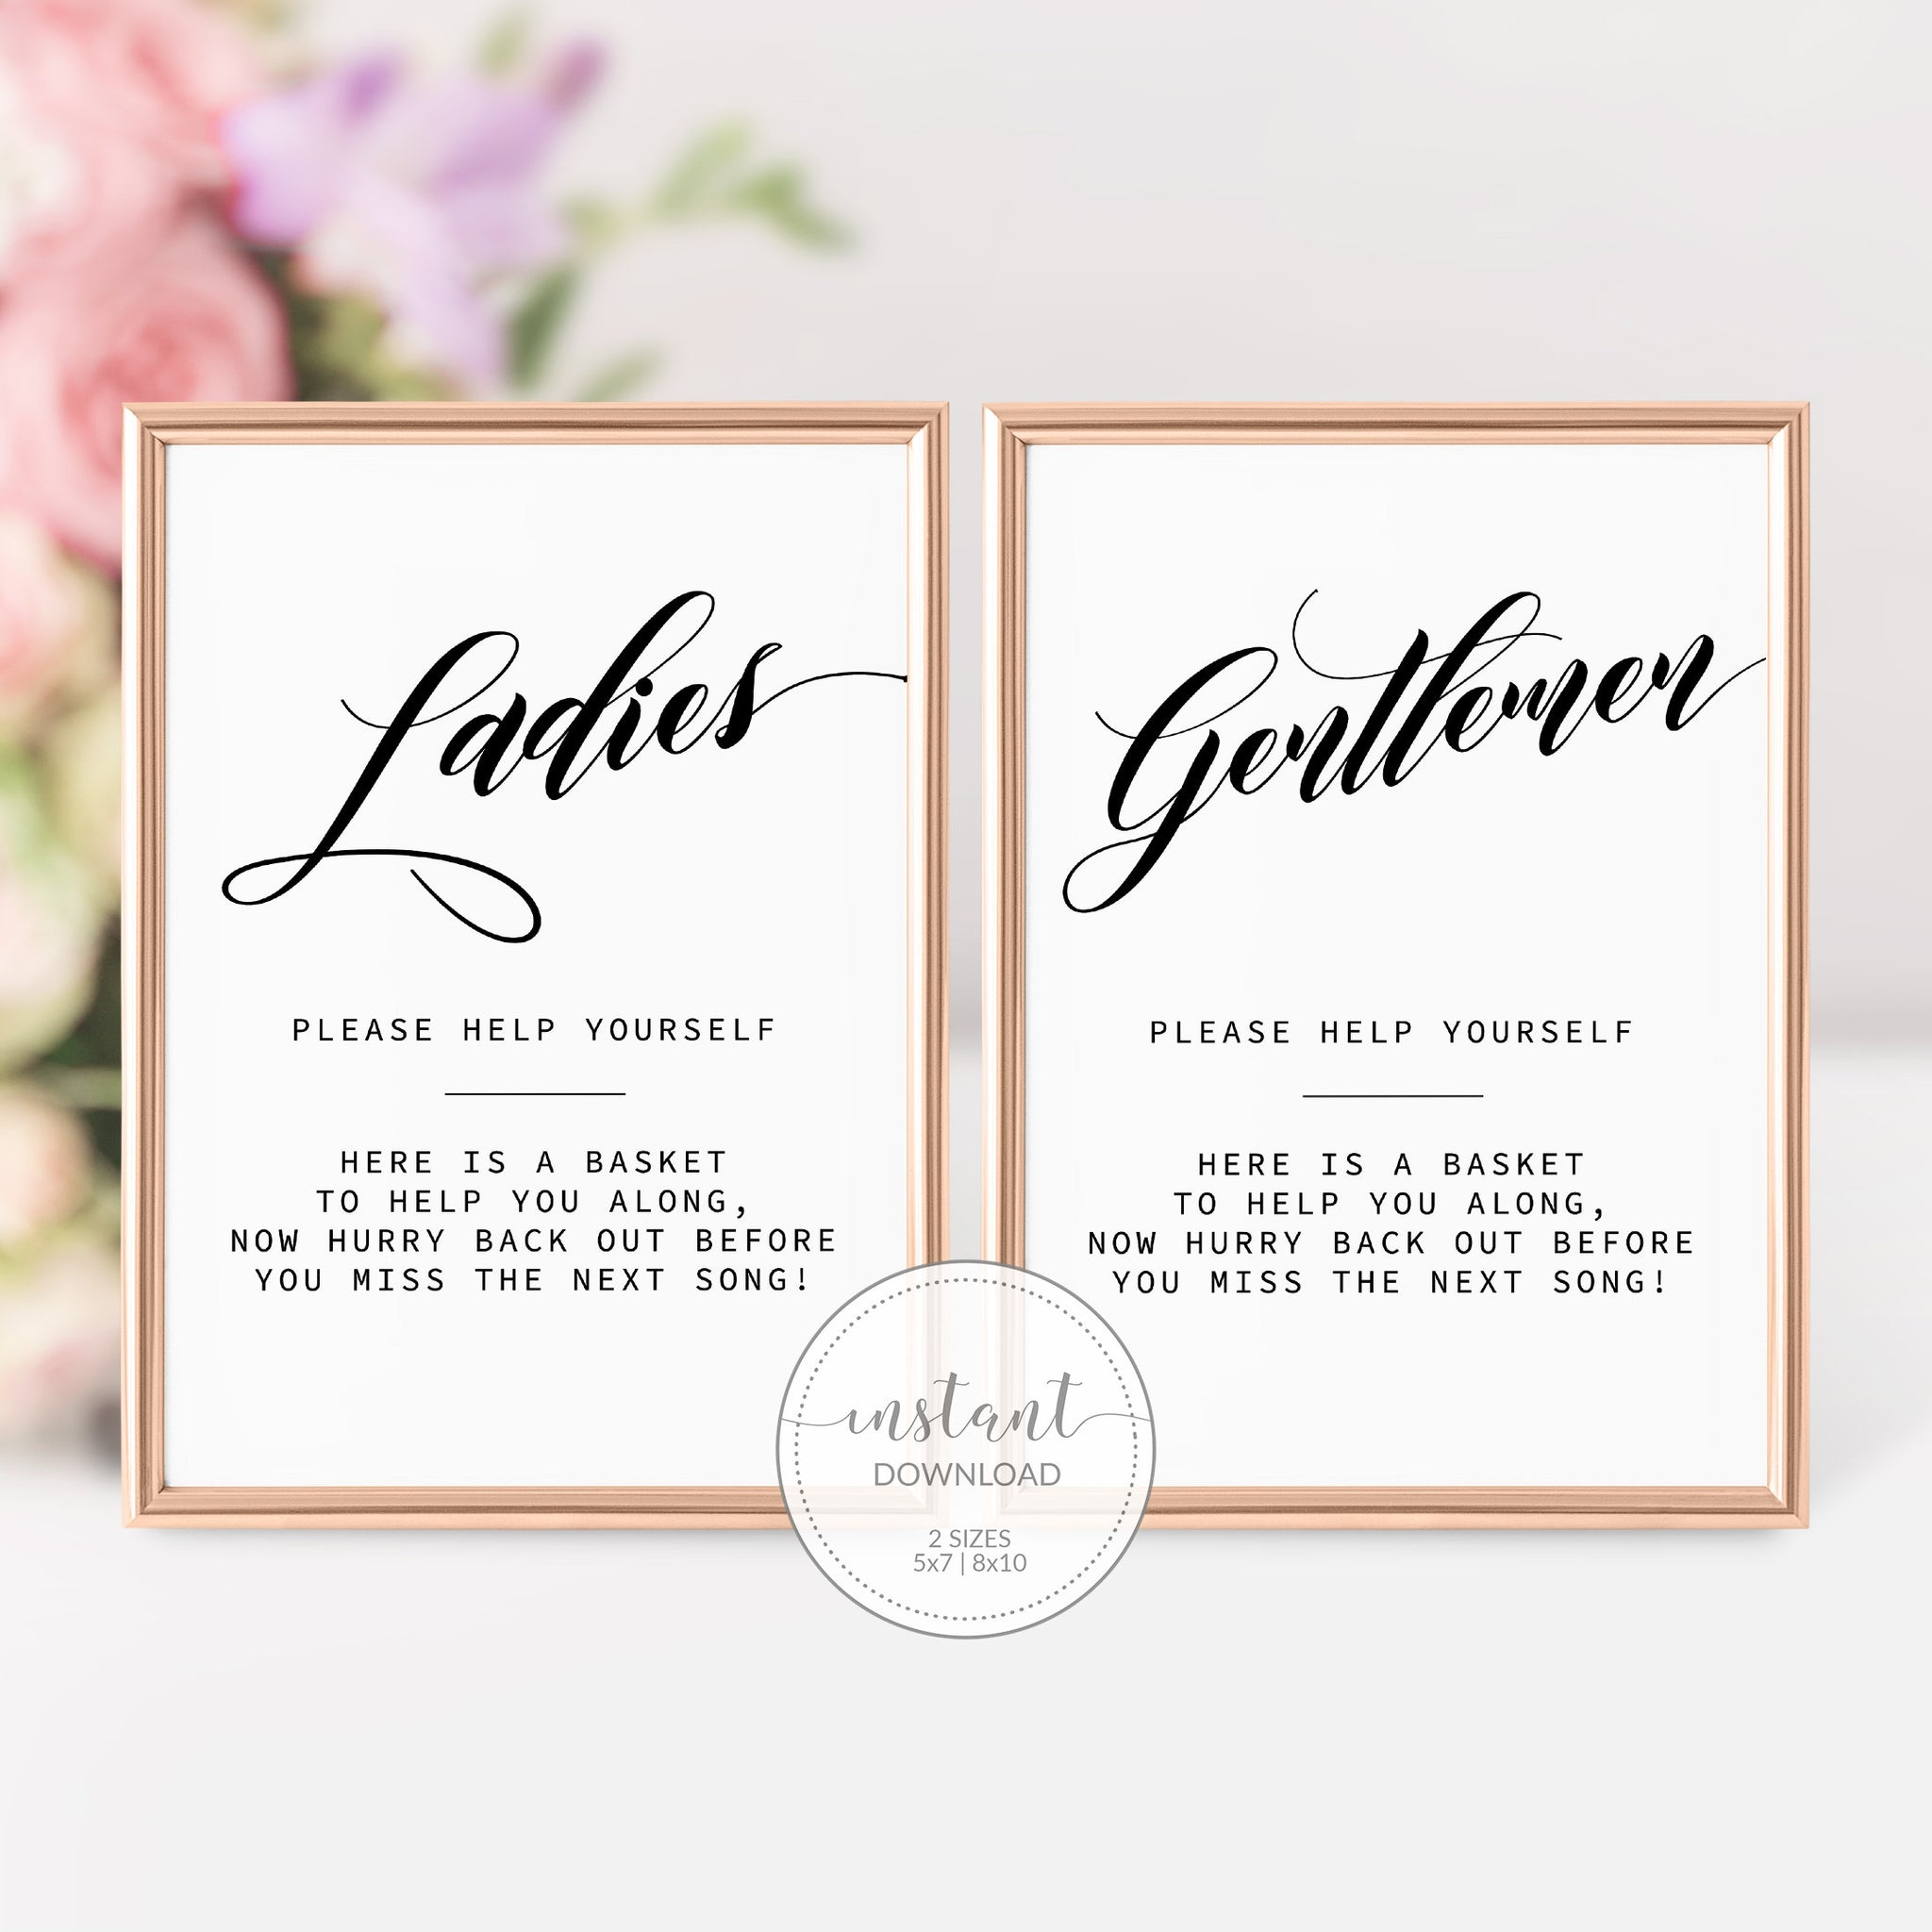 Wedding Bathroom Basket Sign, Ladies Bathroom Sign Wedding, Gentlemen Bathroom Sign at Wedding, Bathroom Wedding Sign Printable - SFB100